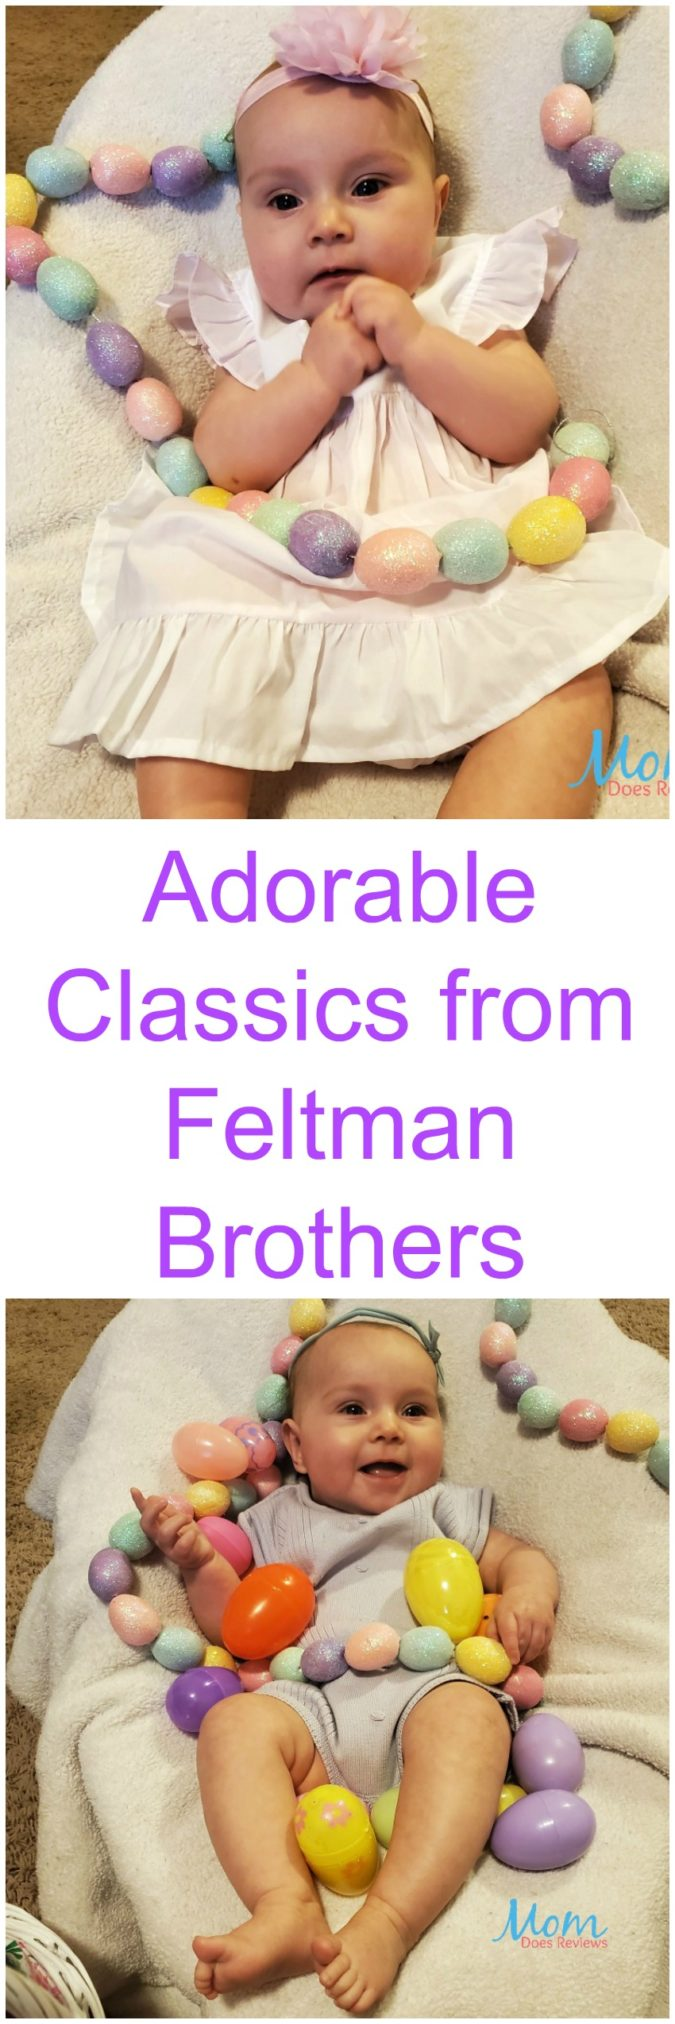 Adorable Classics from Feltman Brothers